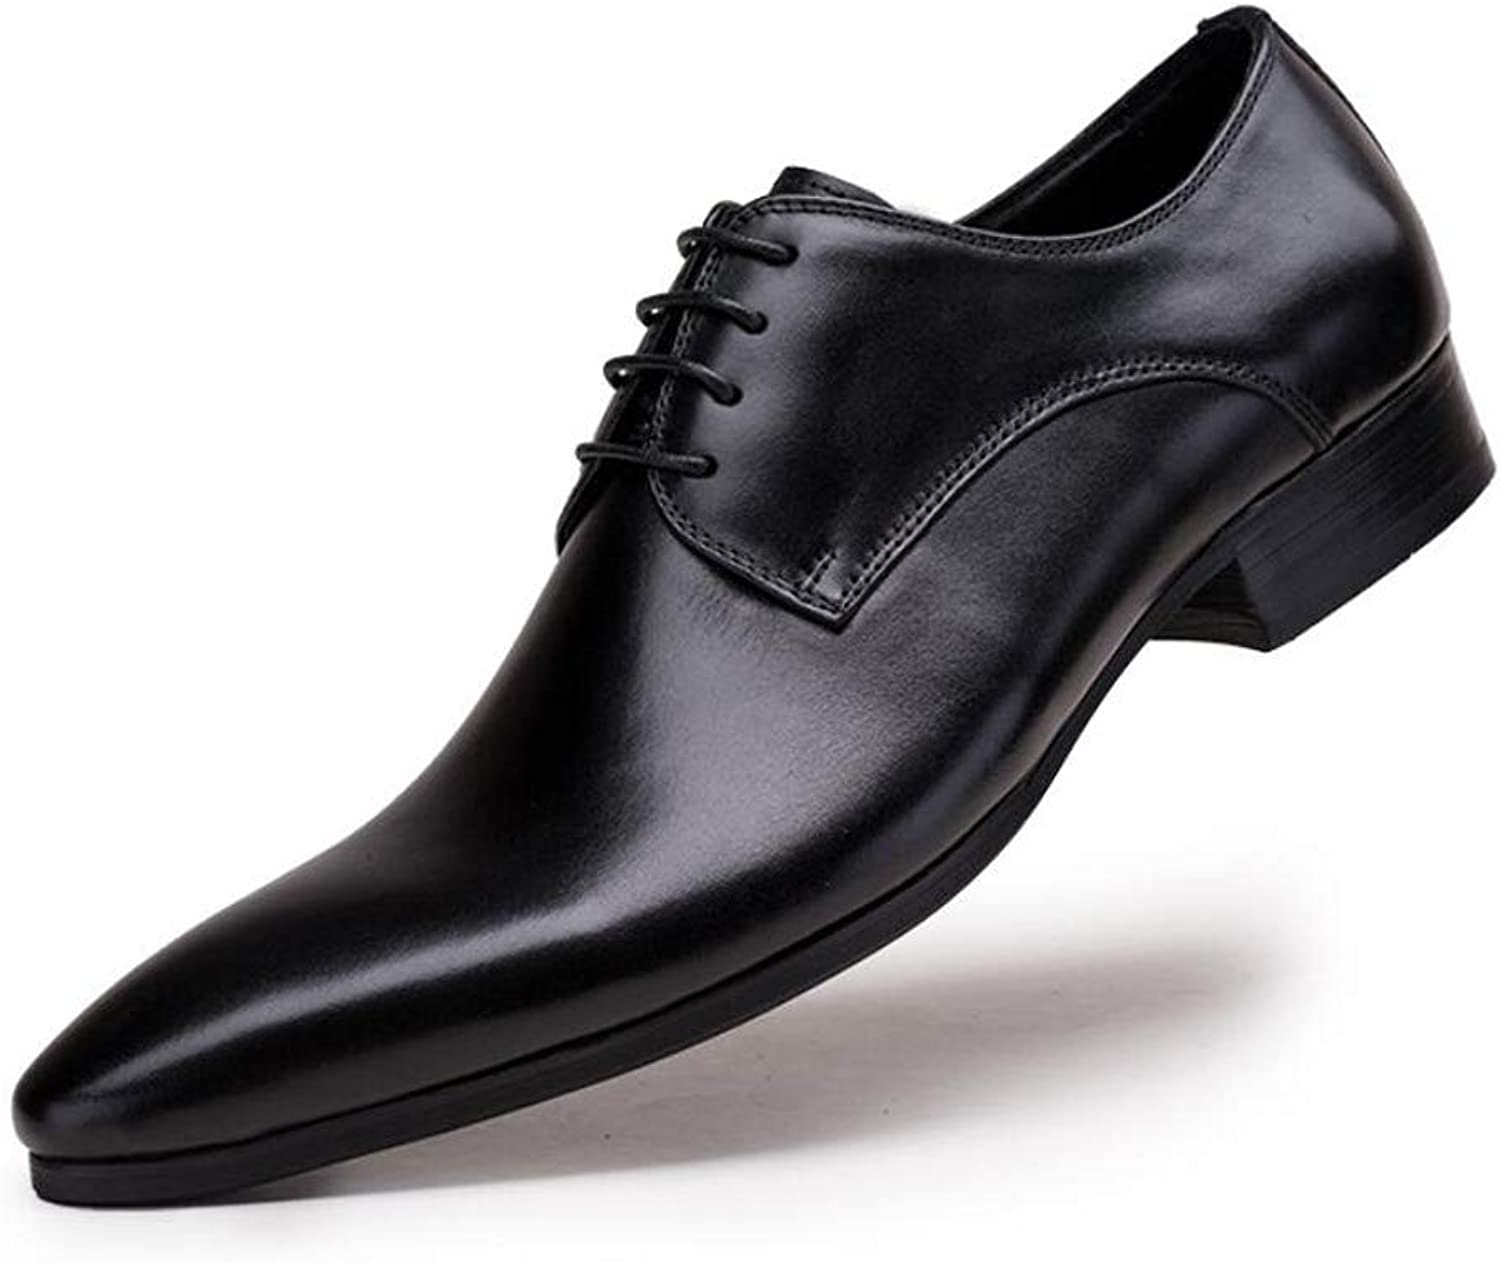 Tuxedo shoes Patent Leather Wedding shoes for Men Cap Toe Lace up Formal Business Oxford shoes